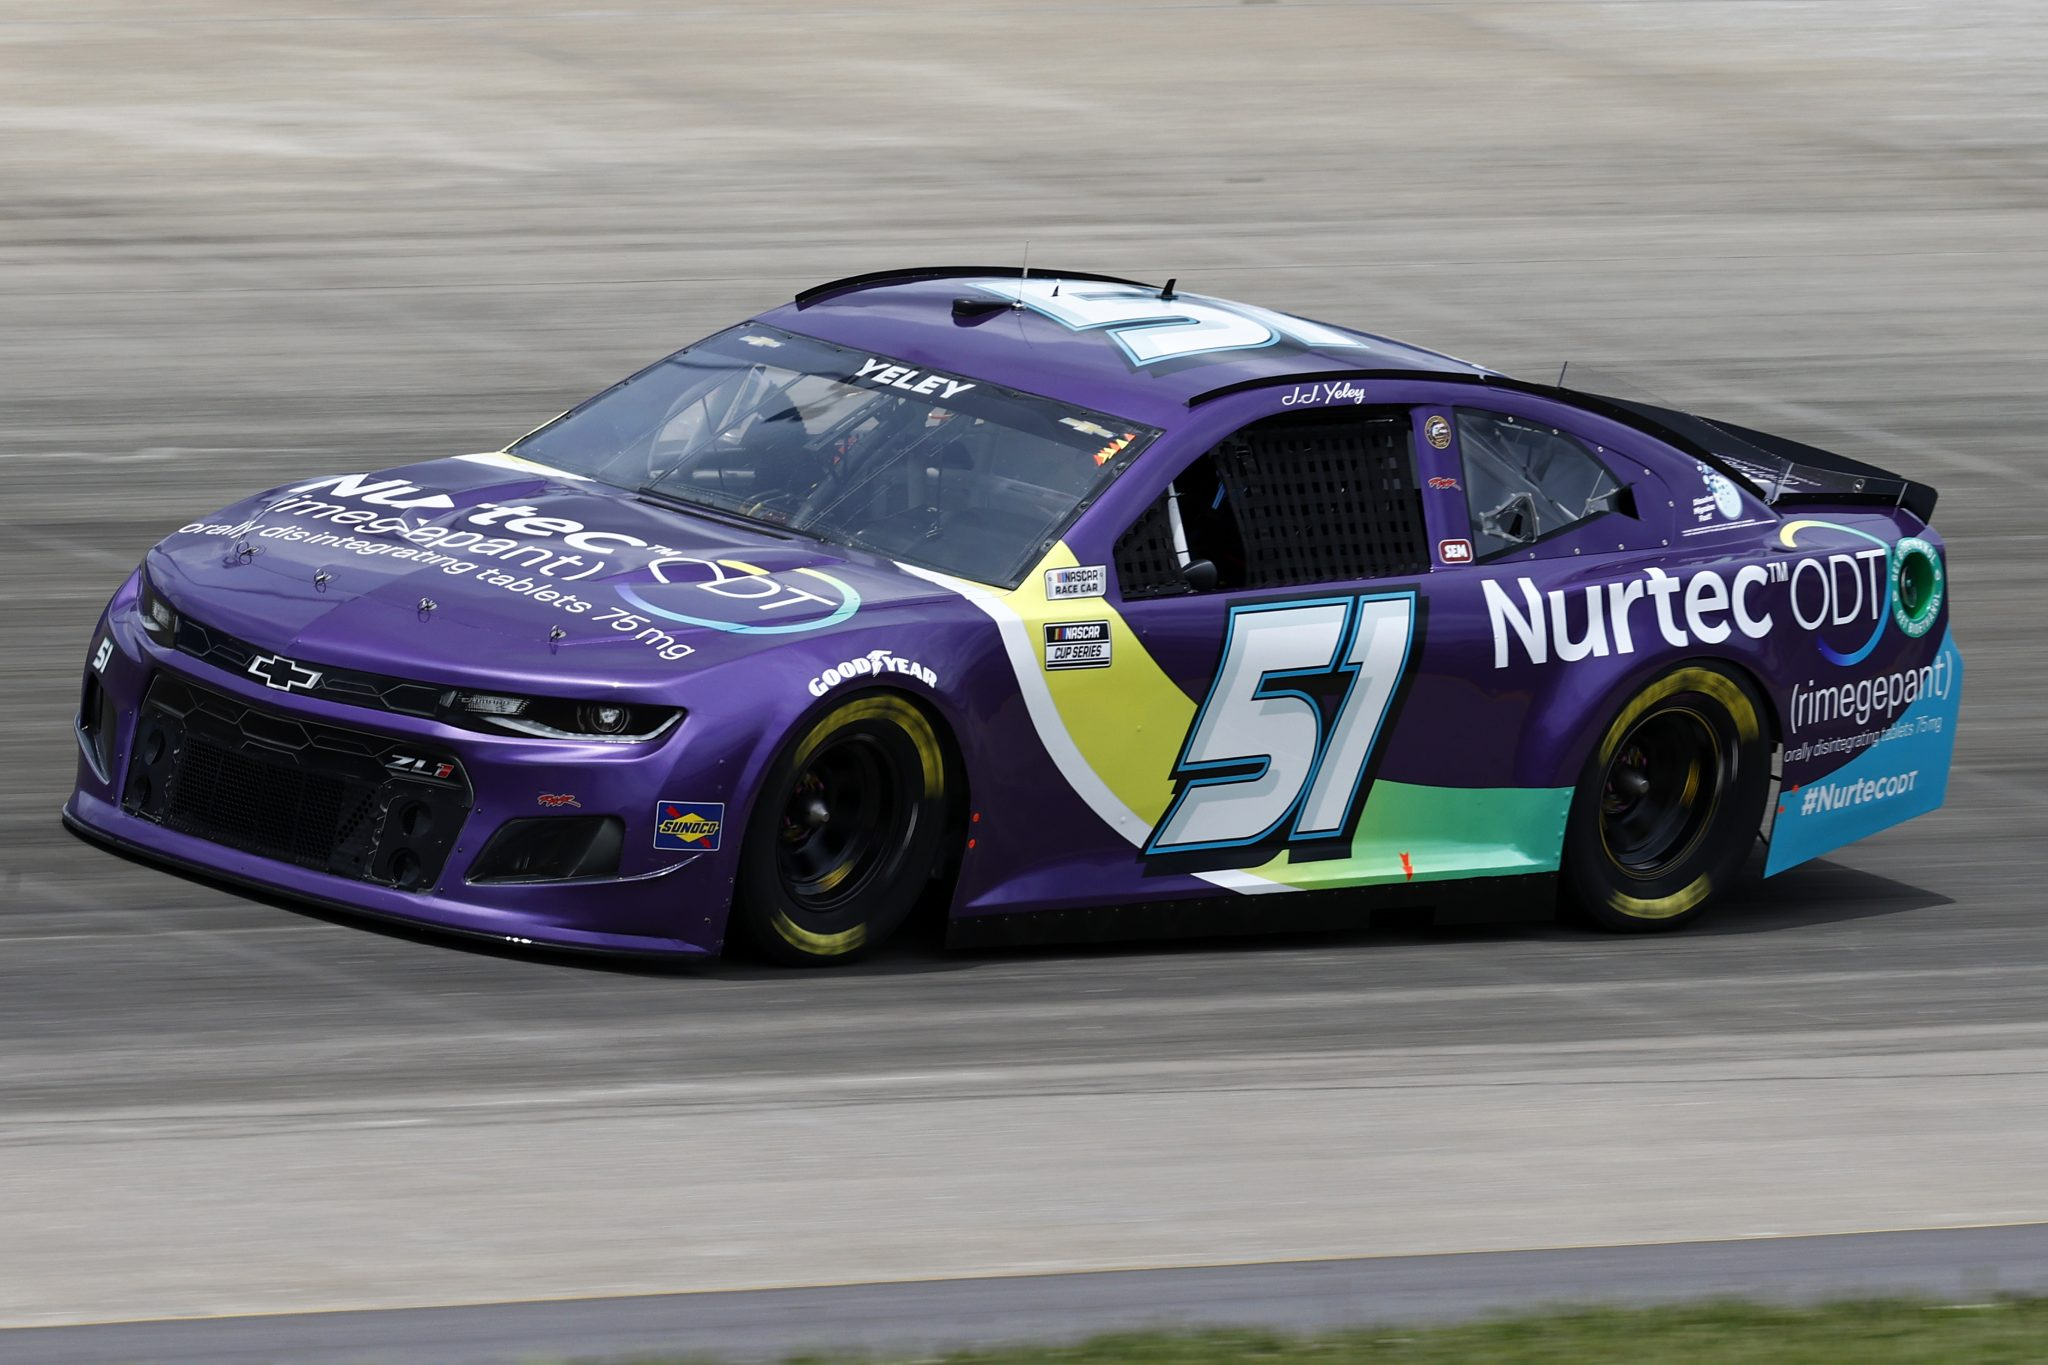 LEBANON, TENNESSEE - JUNE 19: JJ Yeley, driver of the #51 Nurtec ODT Chevrolet, drives during practice for the NASCAR Cup Series Ally 400 at Nashville Superspeedway on June 19, 2021 in Lebanon, Tennessee. (Photo by Jared C. Tilton/Getty Images) | Getty Images